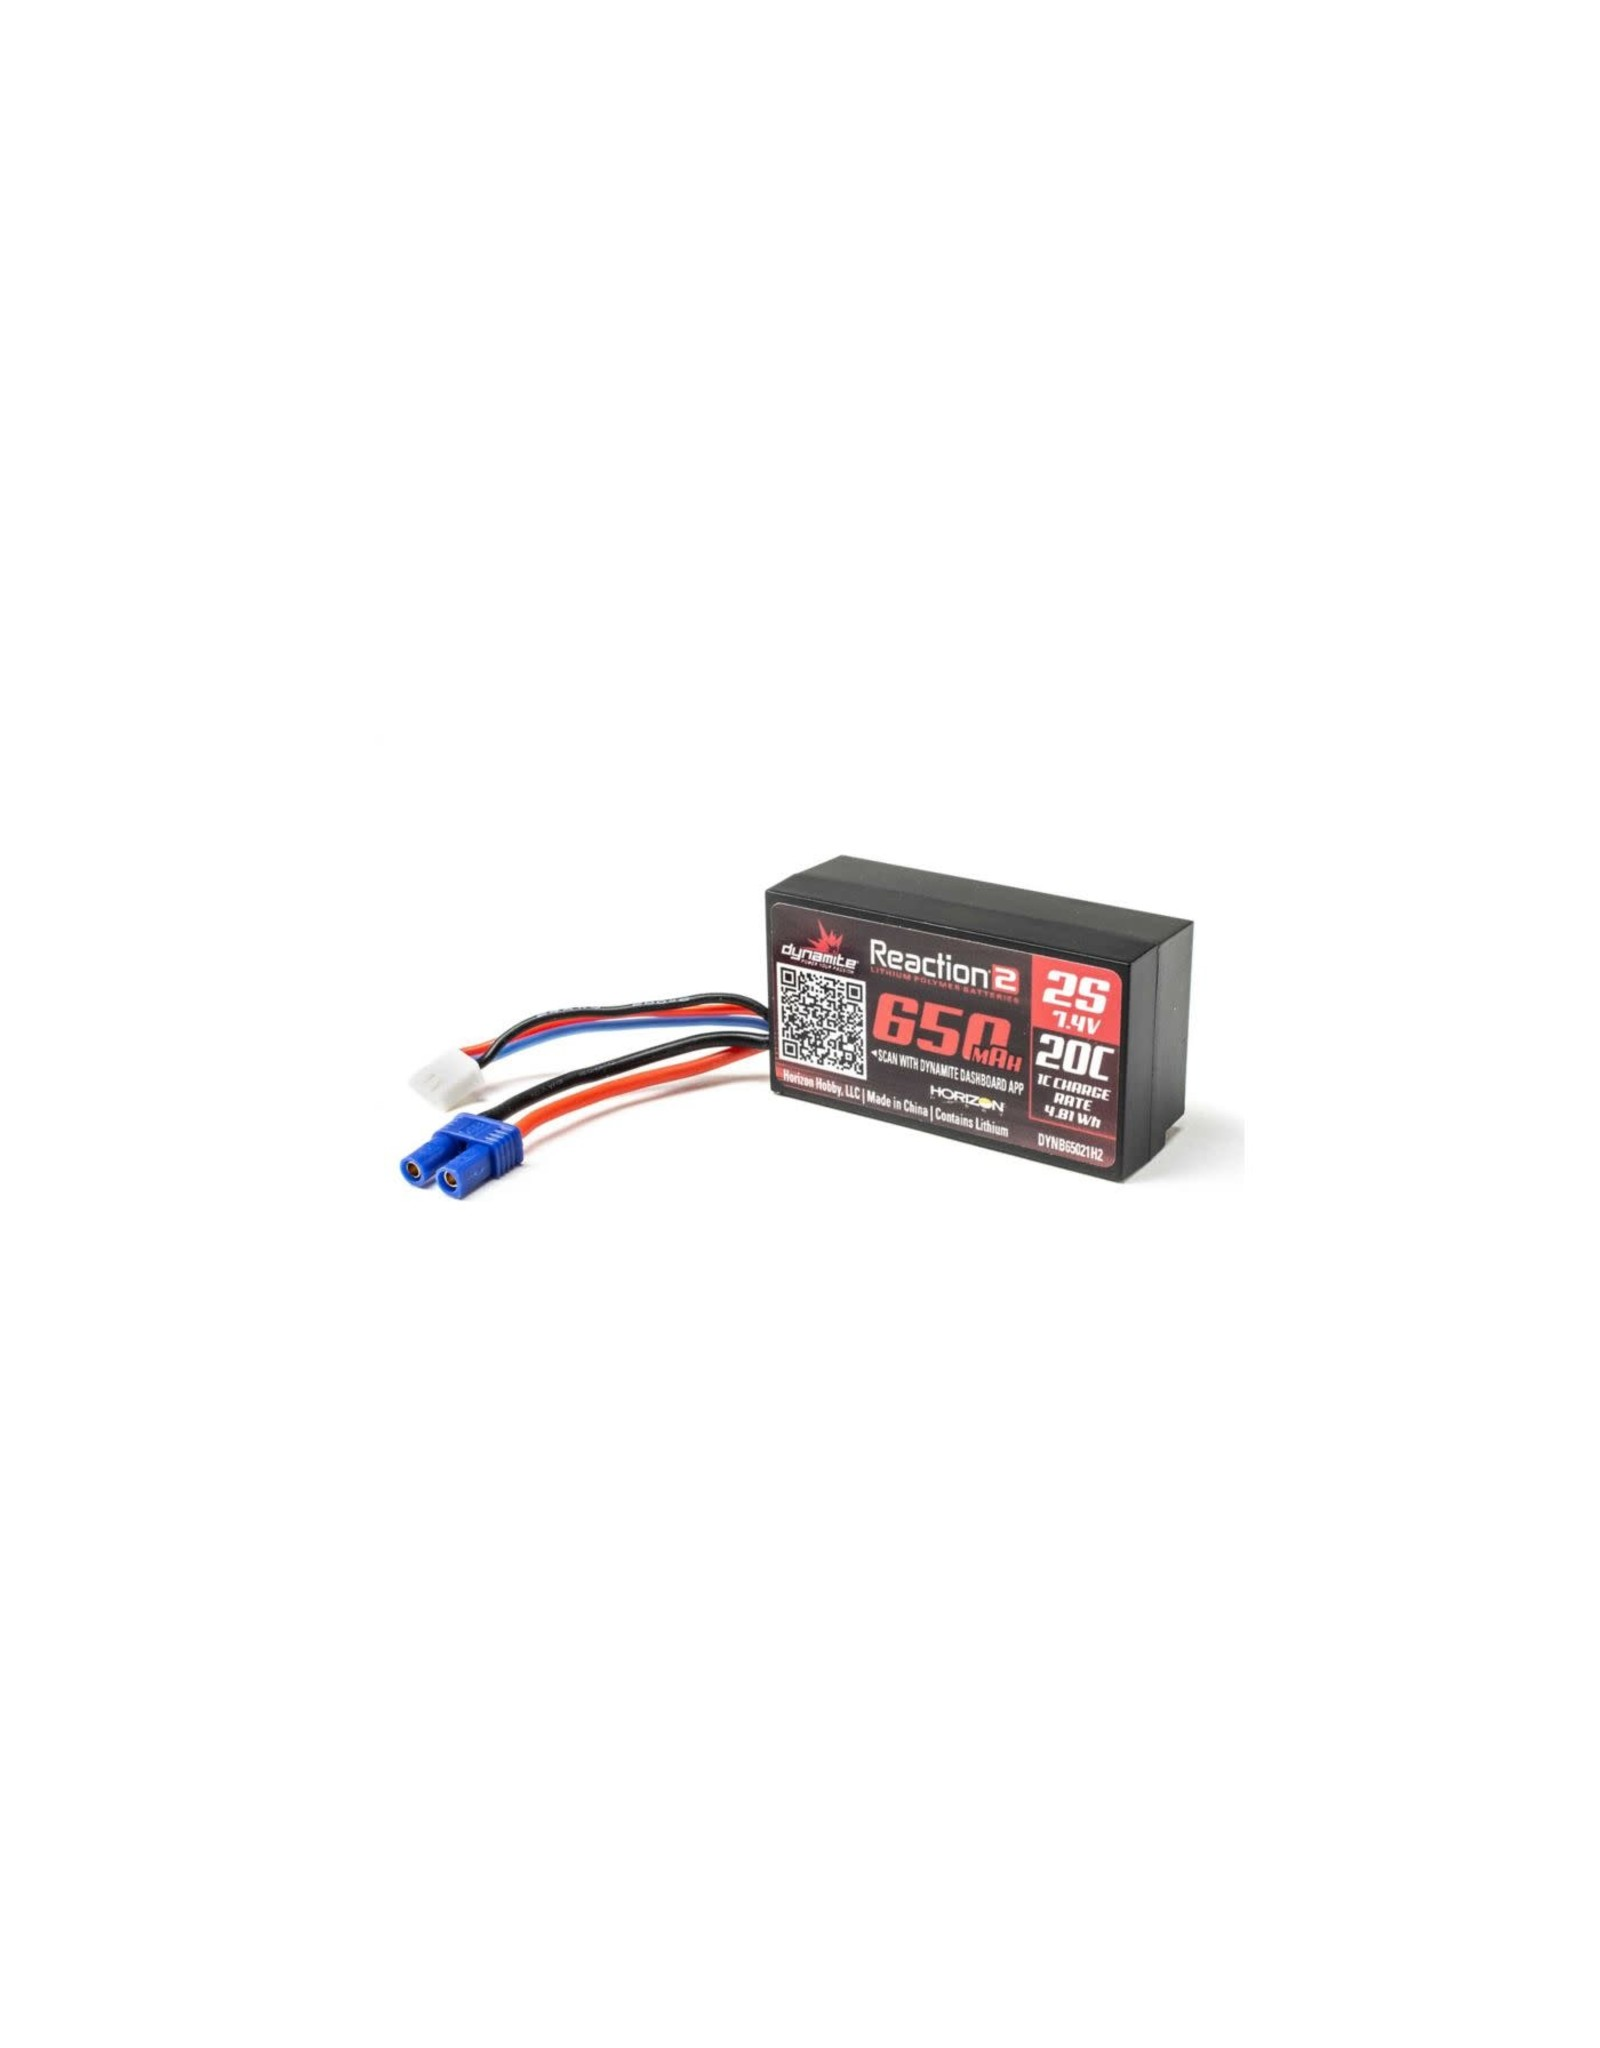 Reaction 2 Reaction 2 2s  7.4 20cLipo 650mah DYNB65021H2